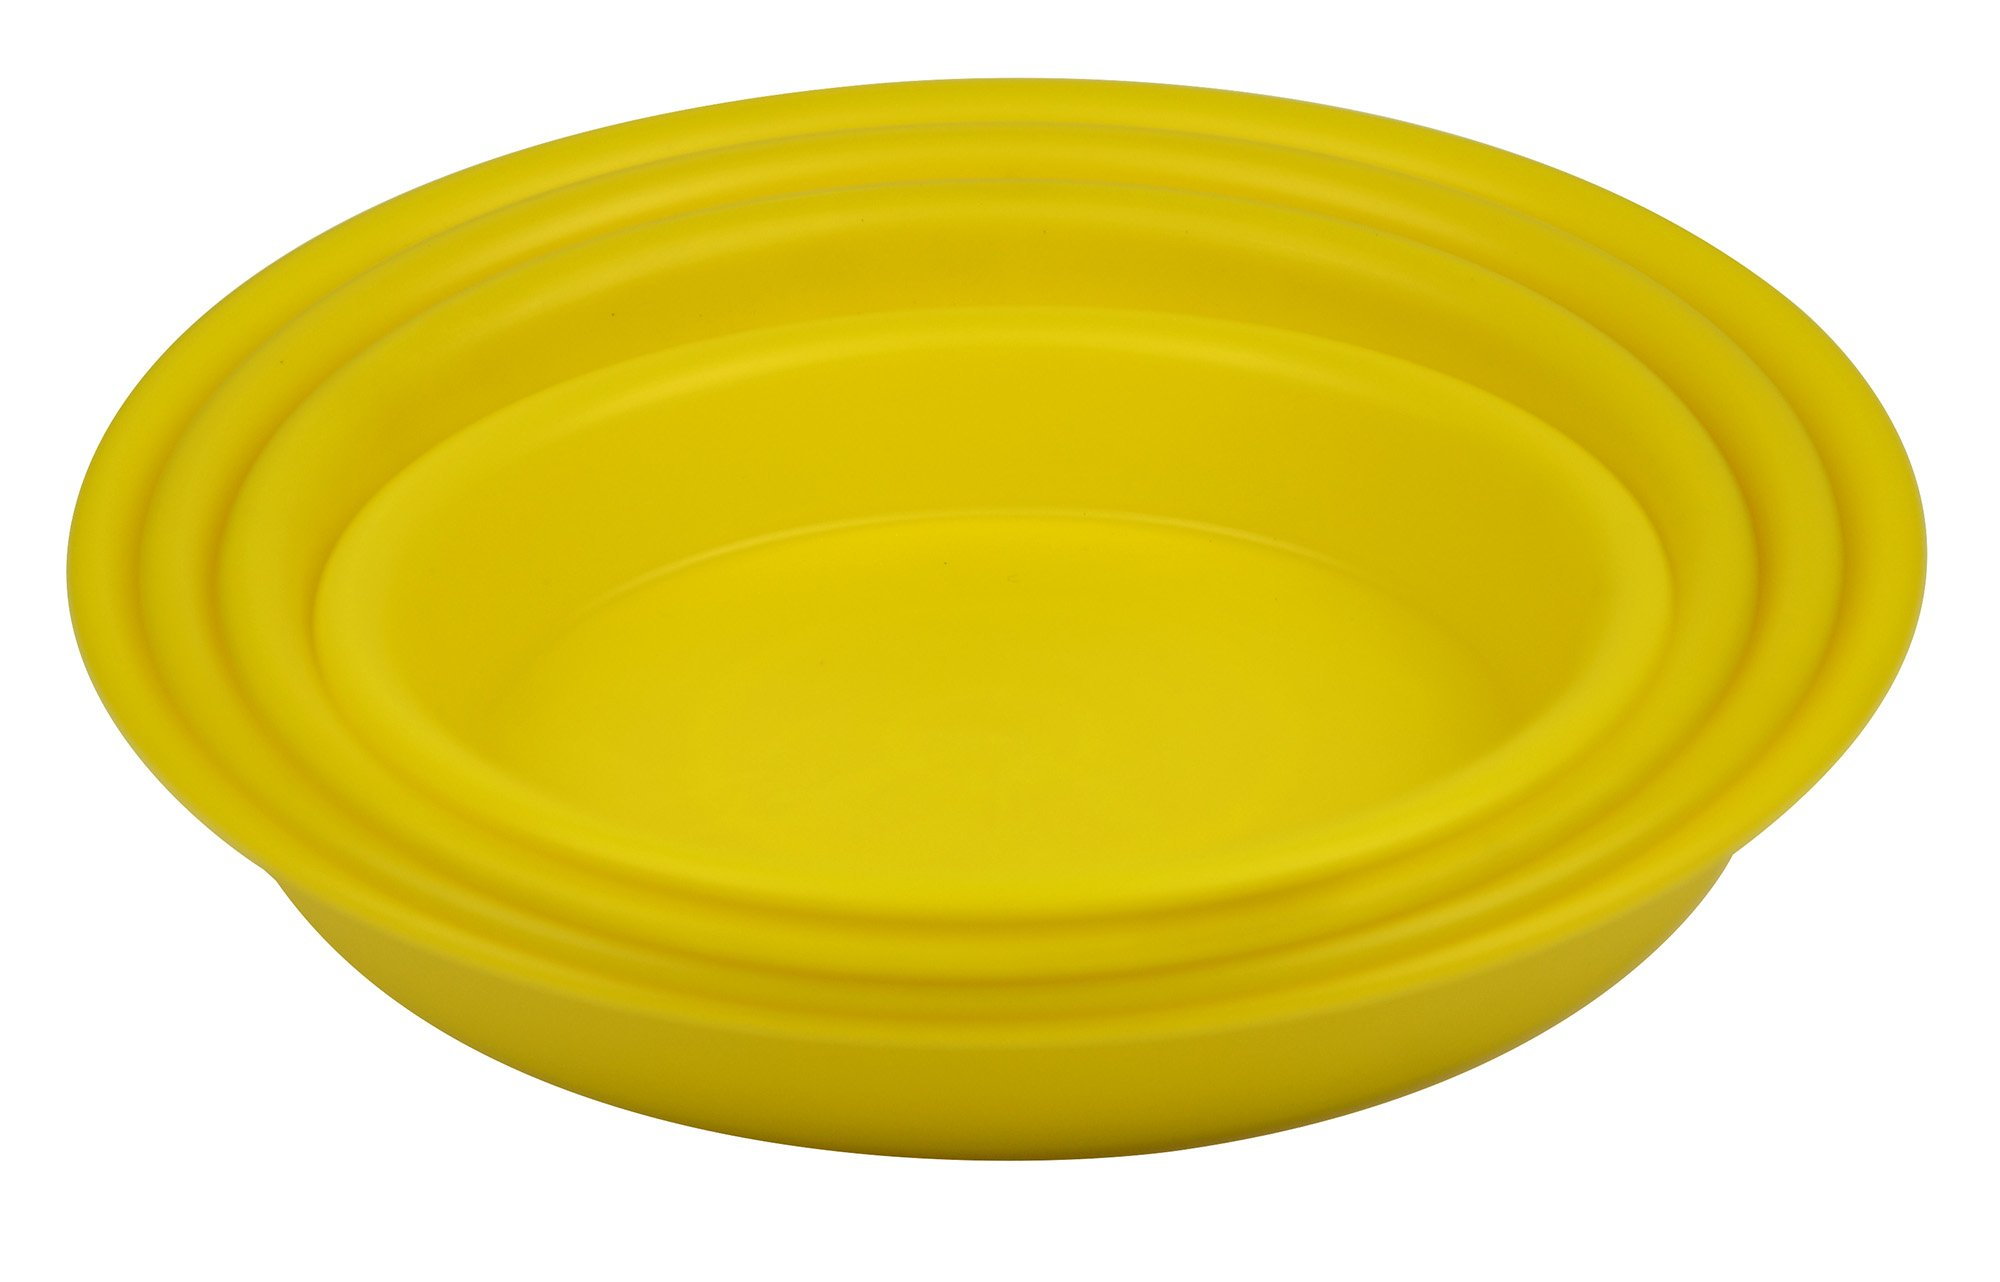 4.5'' Round Plant Saucer Planter Tray Pat Pallet for Flowerpot,Yellow,1200 Count